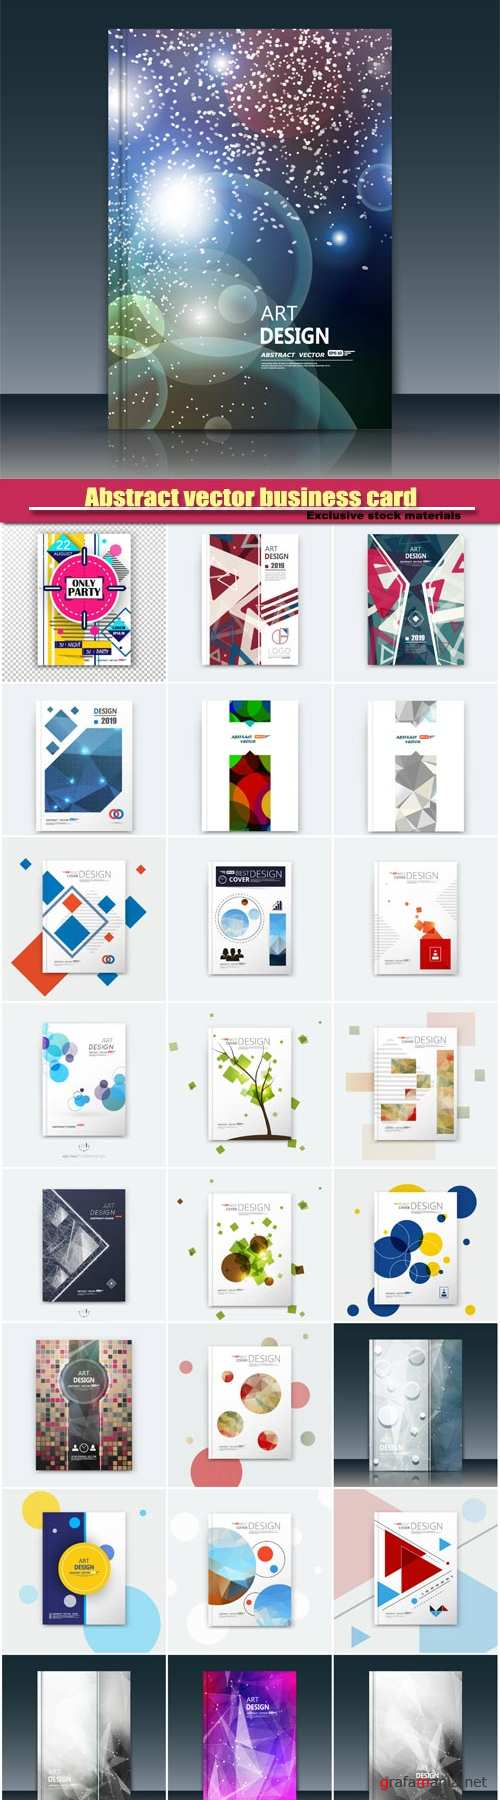 Abstract composition vector business card, brochure title sheet